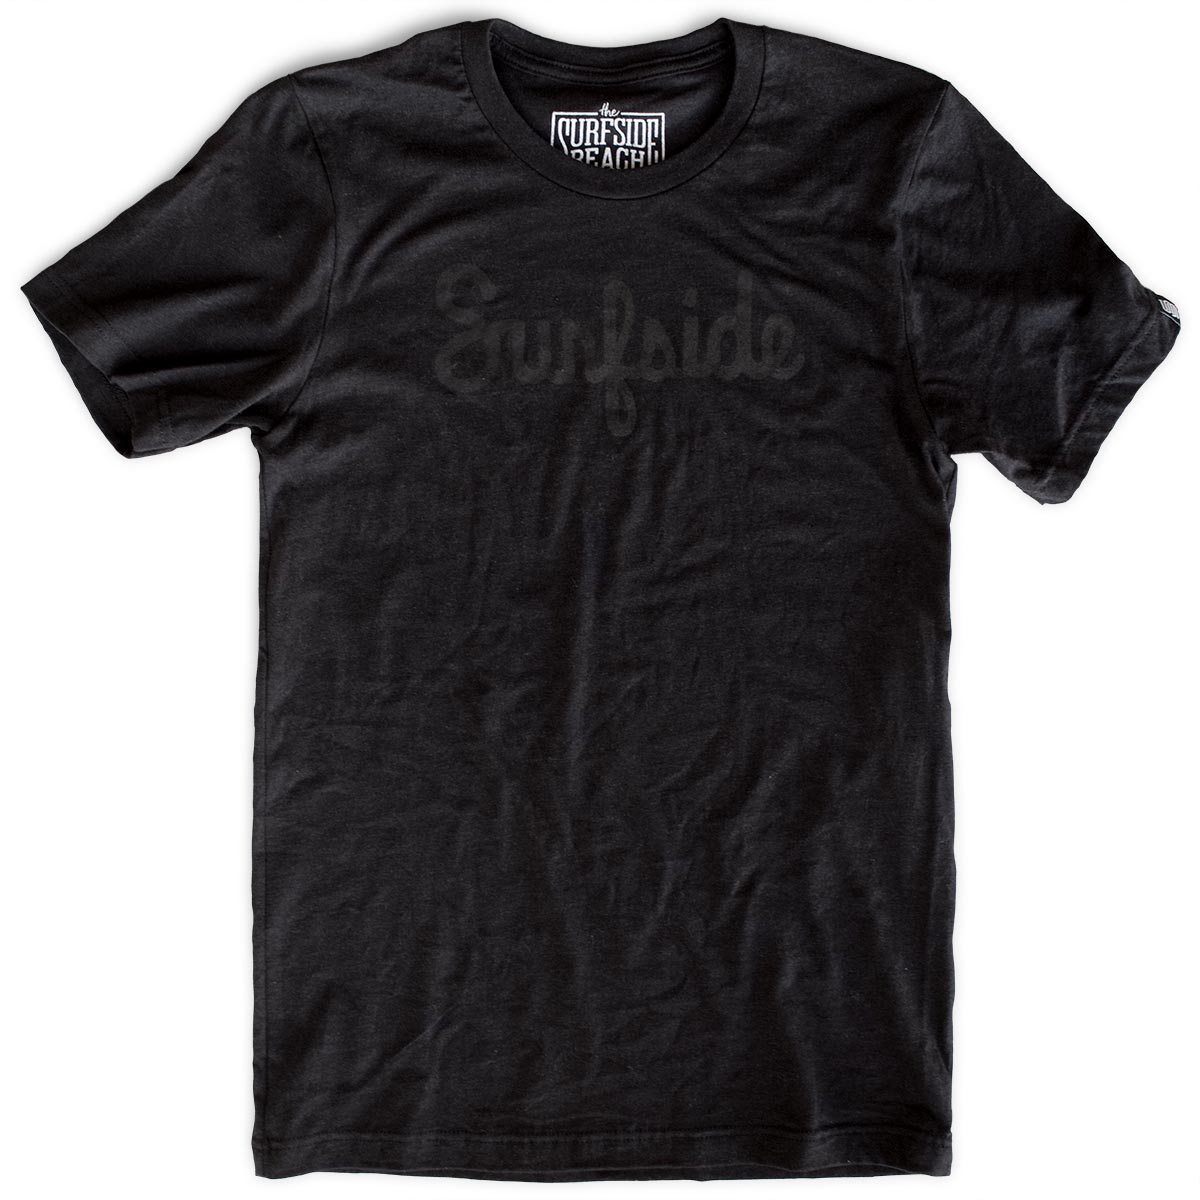 Surfside (Script) premium black-on-black T-shirt